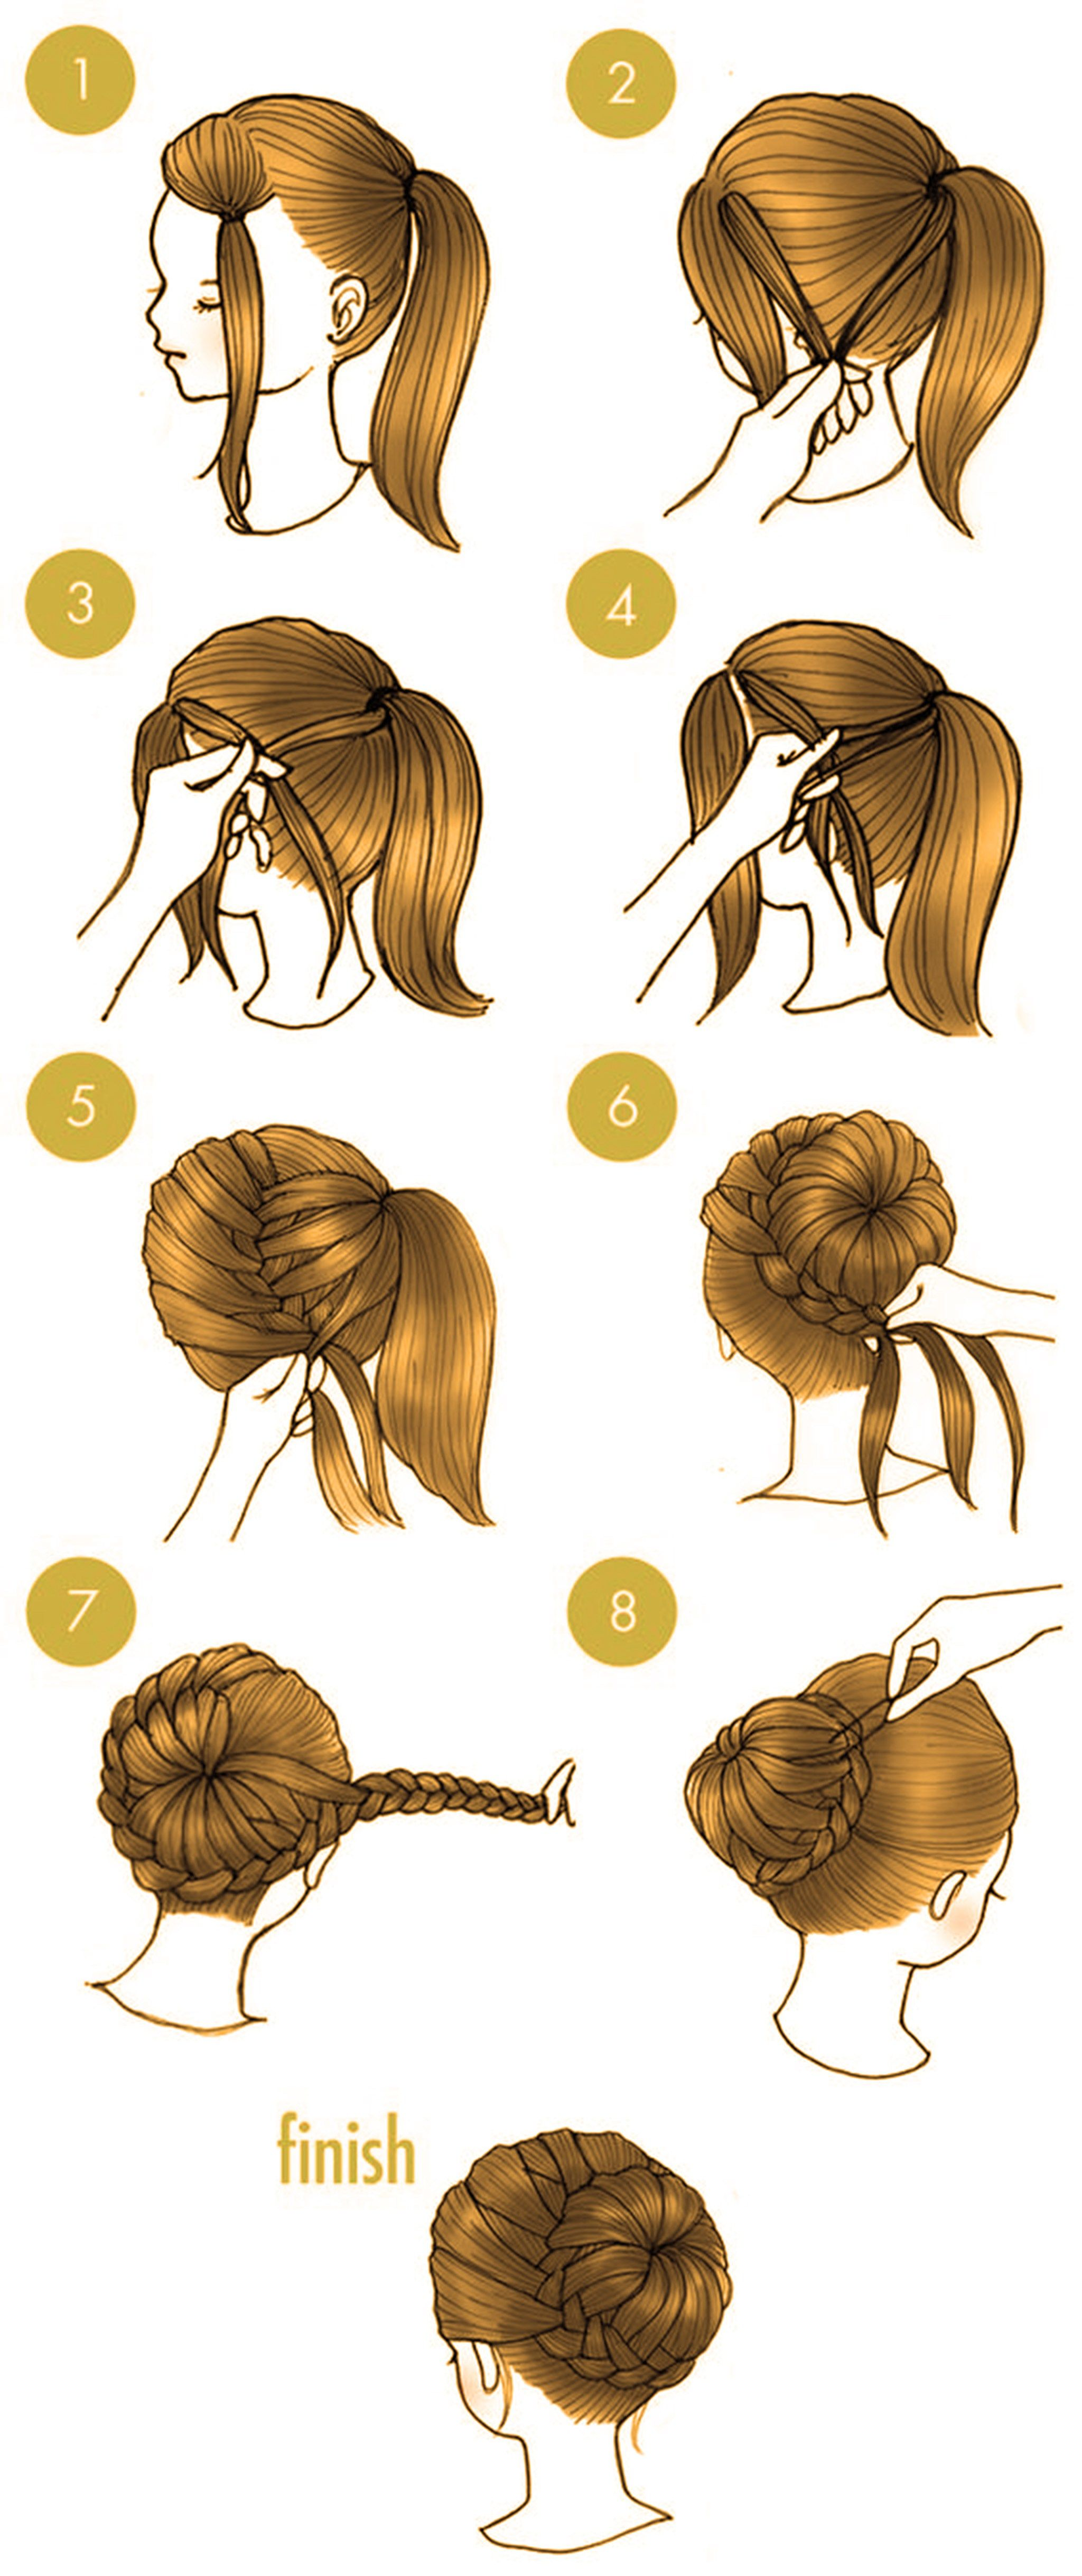 10 Quick Cute Hairstyles That Take Only 2 Minutes Of Your Time